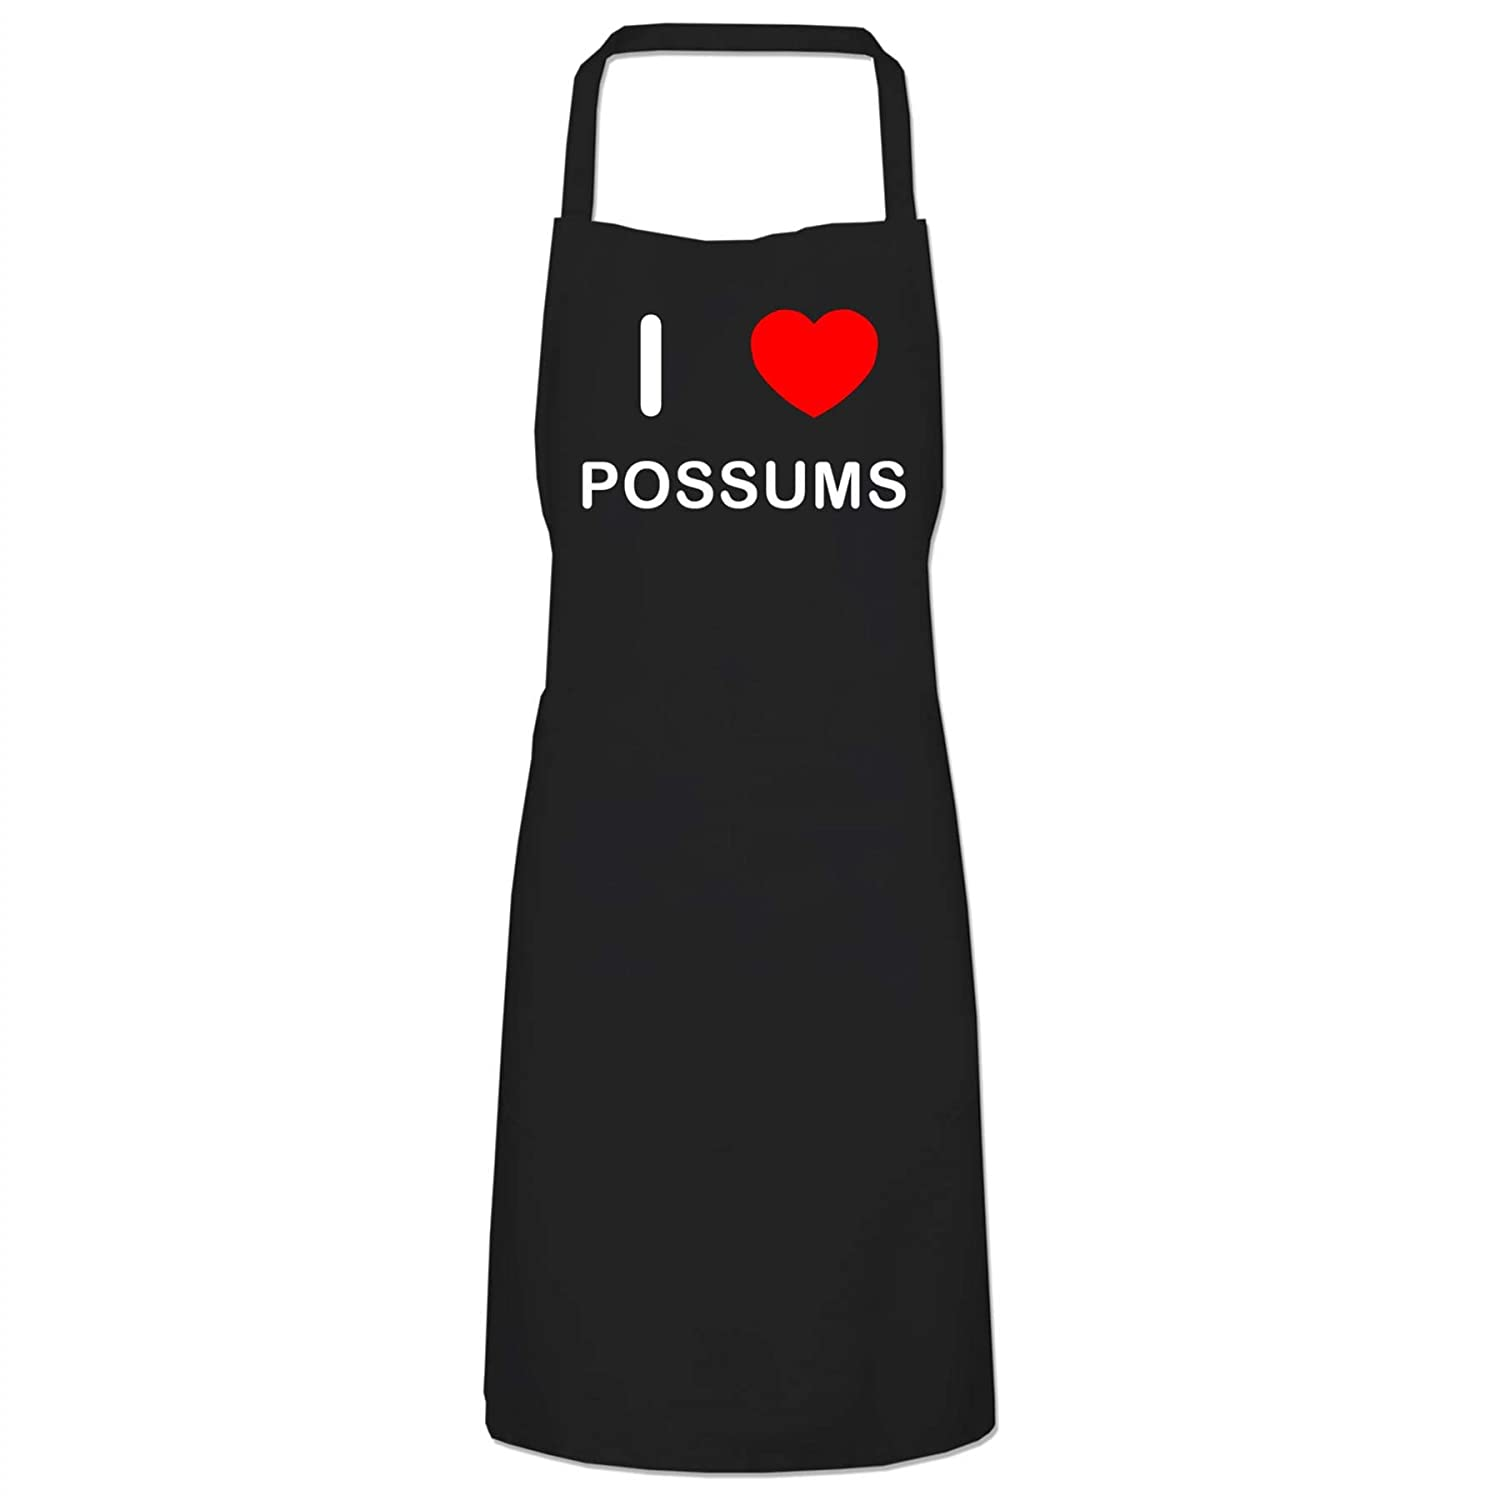 I Love Possums - Black Cooks Bib Apron BadgeBeast.co.uk